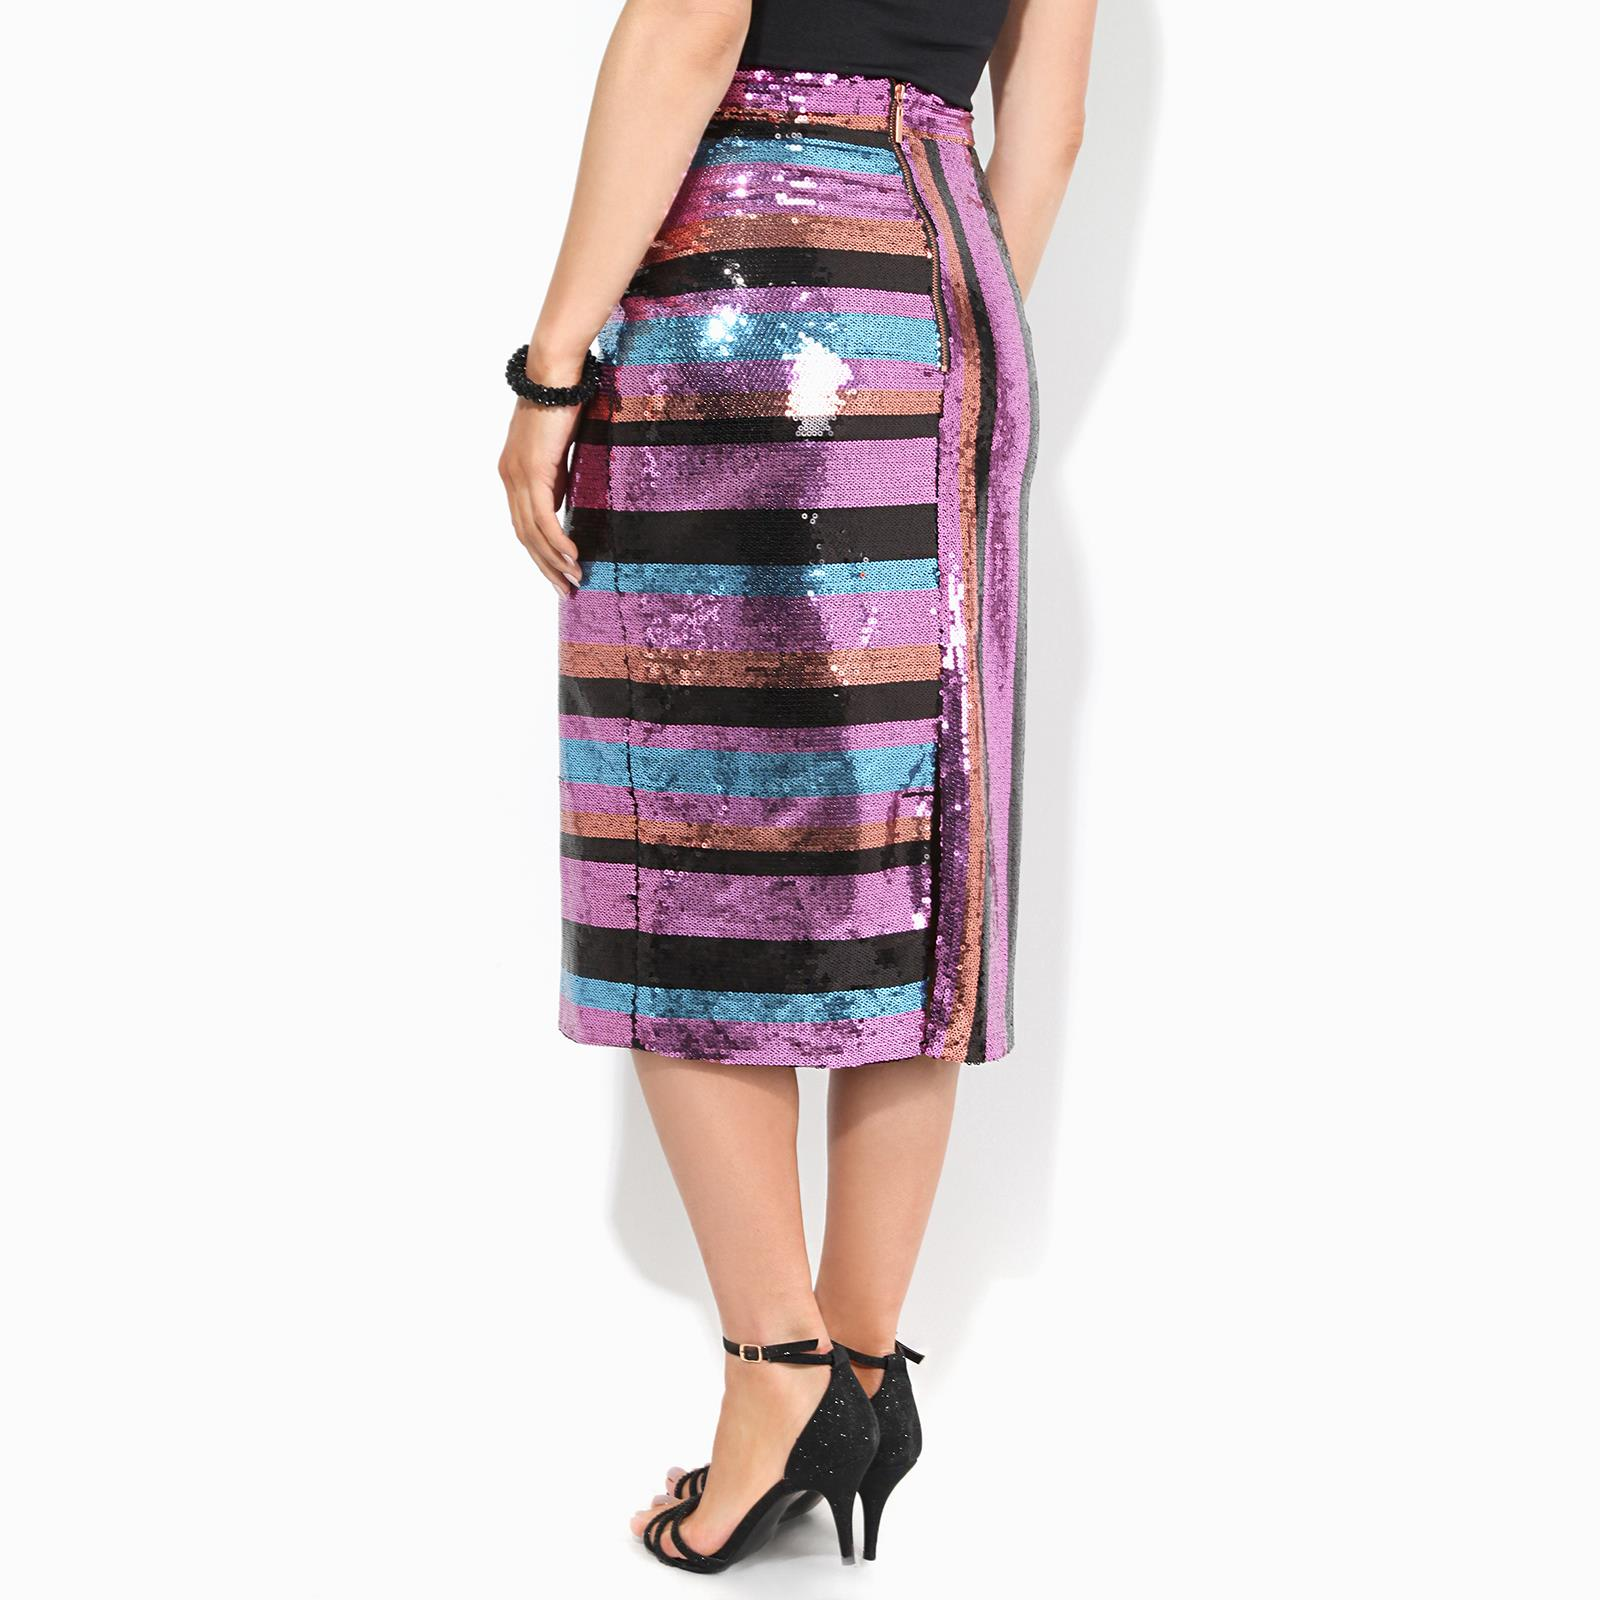 Womens-Ladies-Sequin-Pencil-Midi-Skirt-Striped-Pattern-Party-Evening thumbnail 3